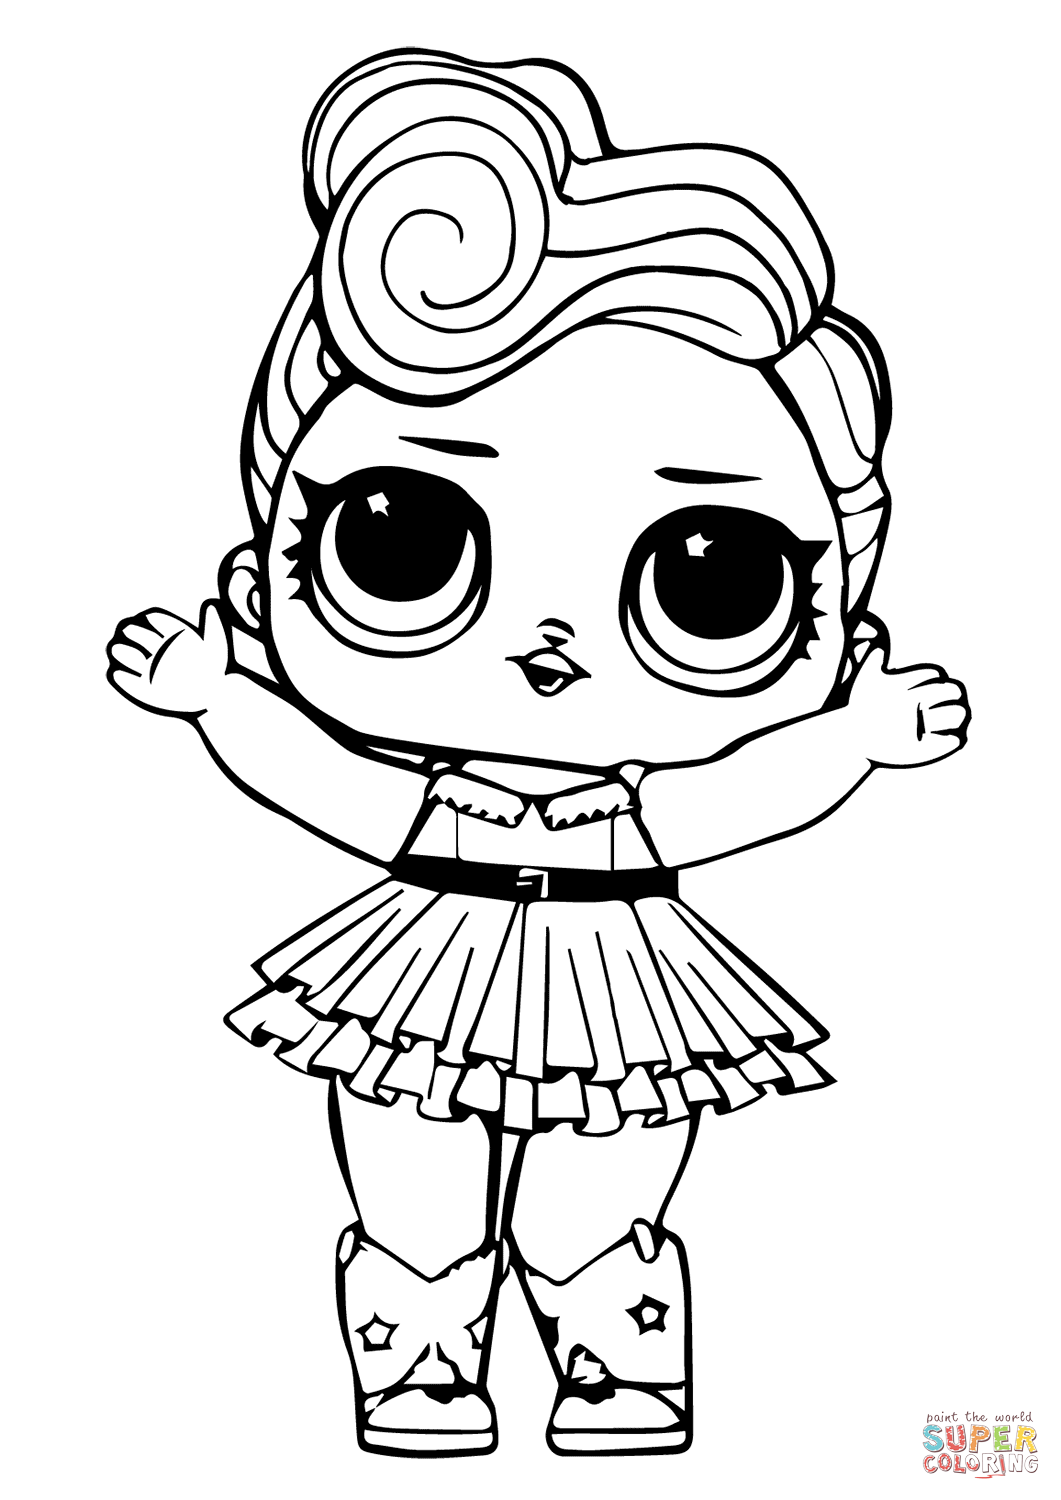 free girl coloring pages to print coloring pages for girls 5 coloring kids print girl to pages free coloring